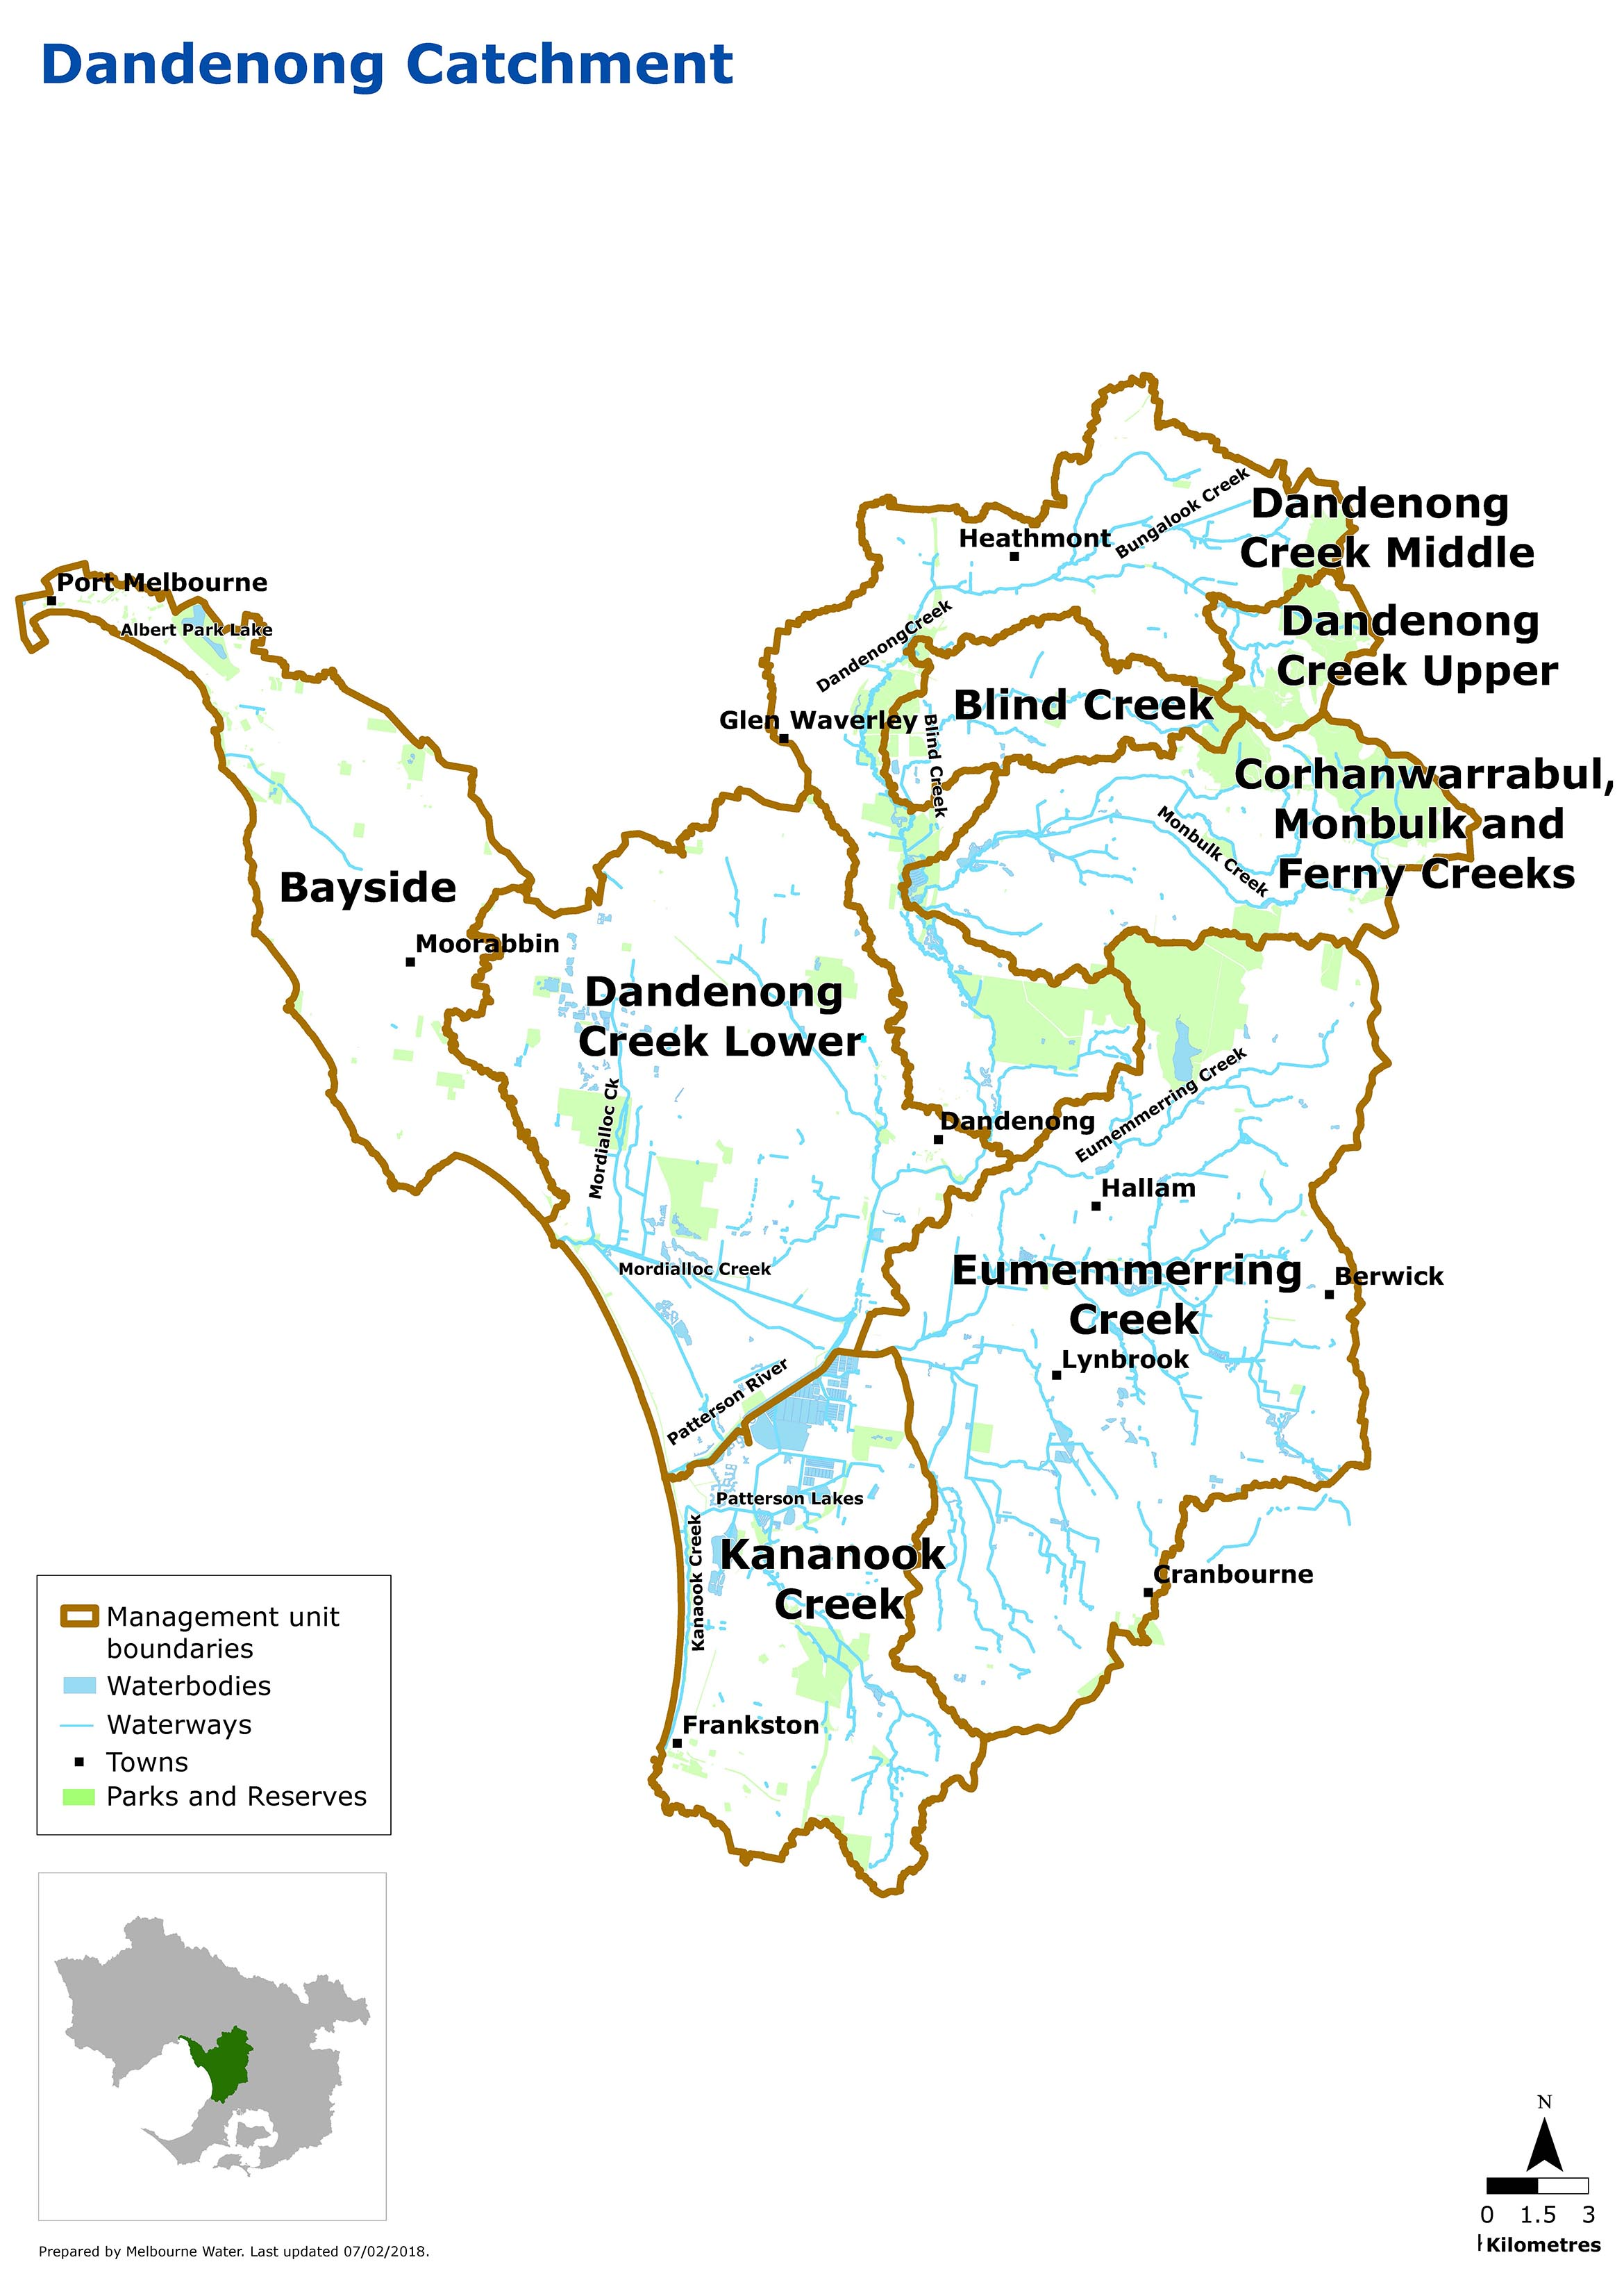 Map of Dandenong Catchment